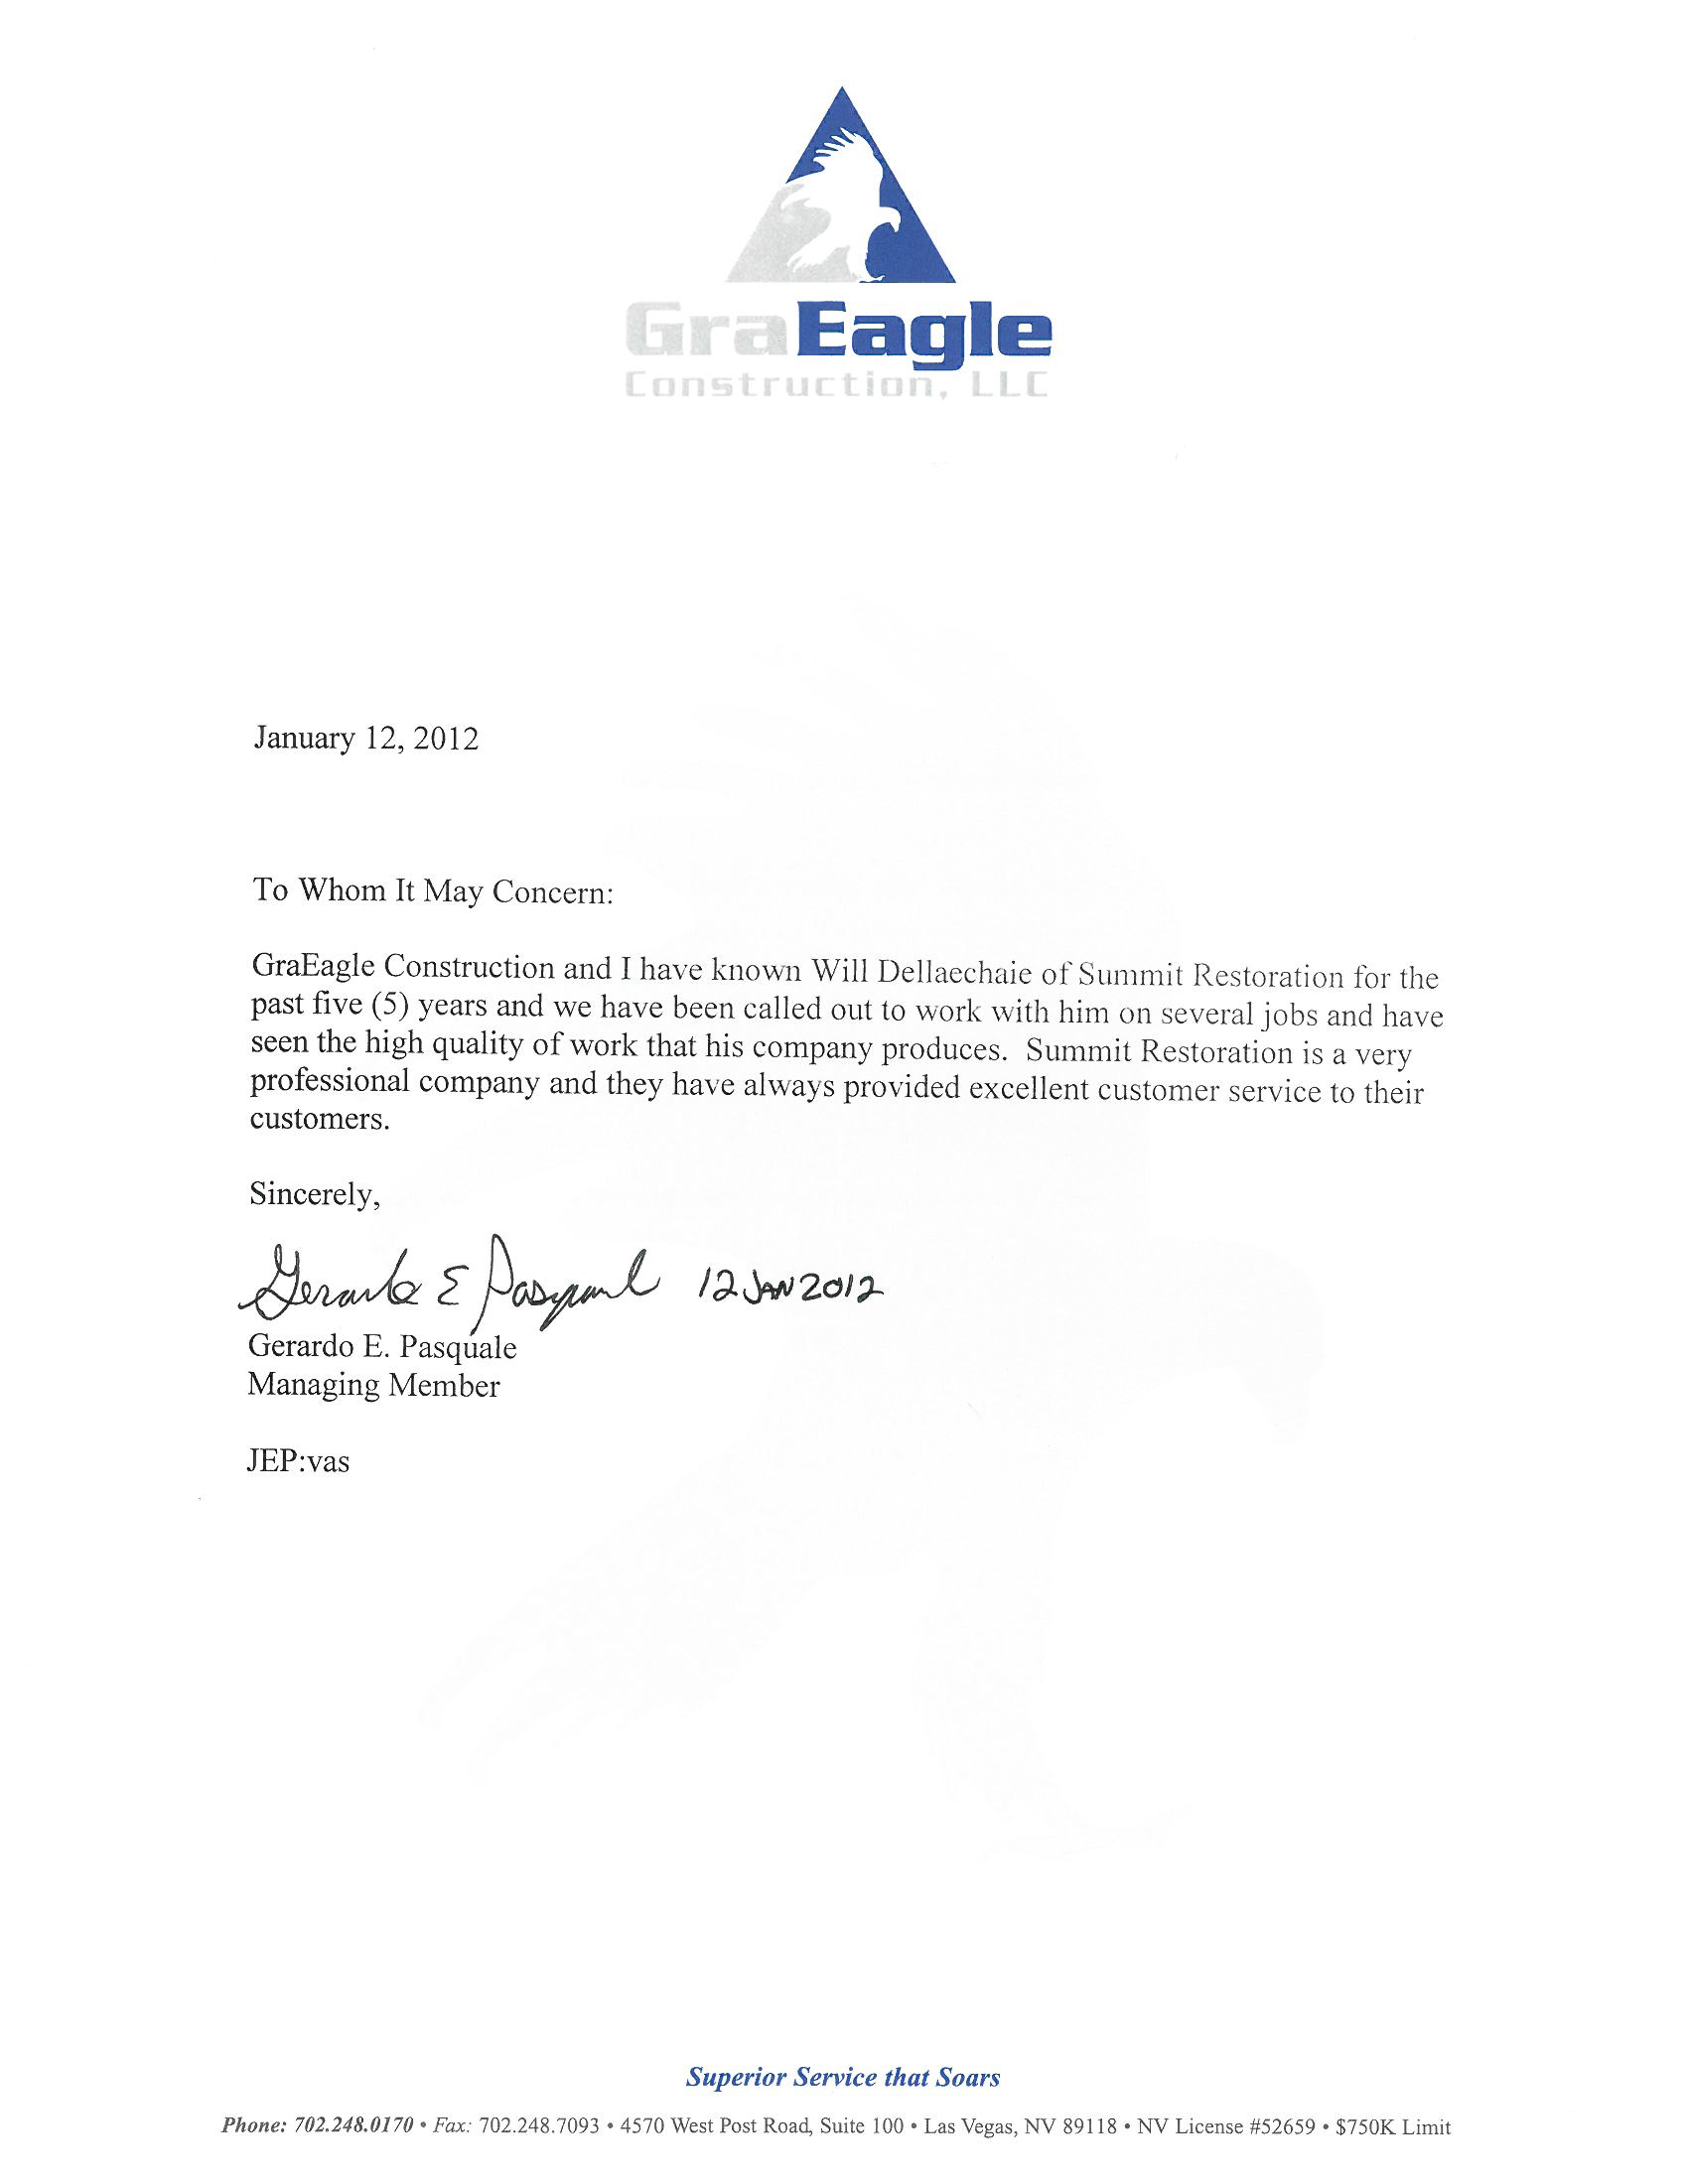 Testimonial from GraEagle Construction